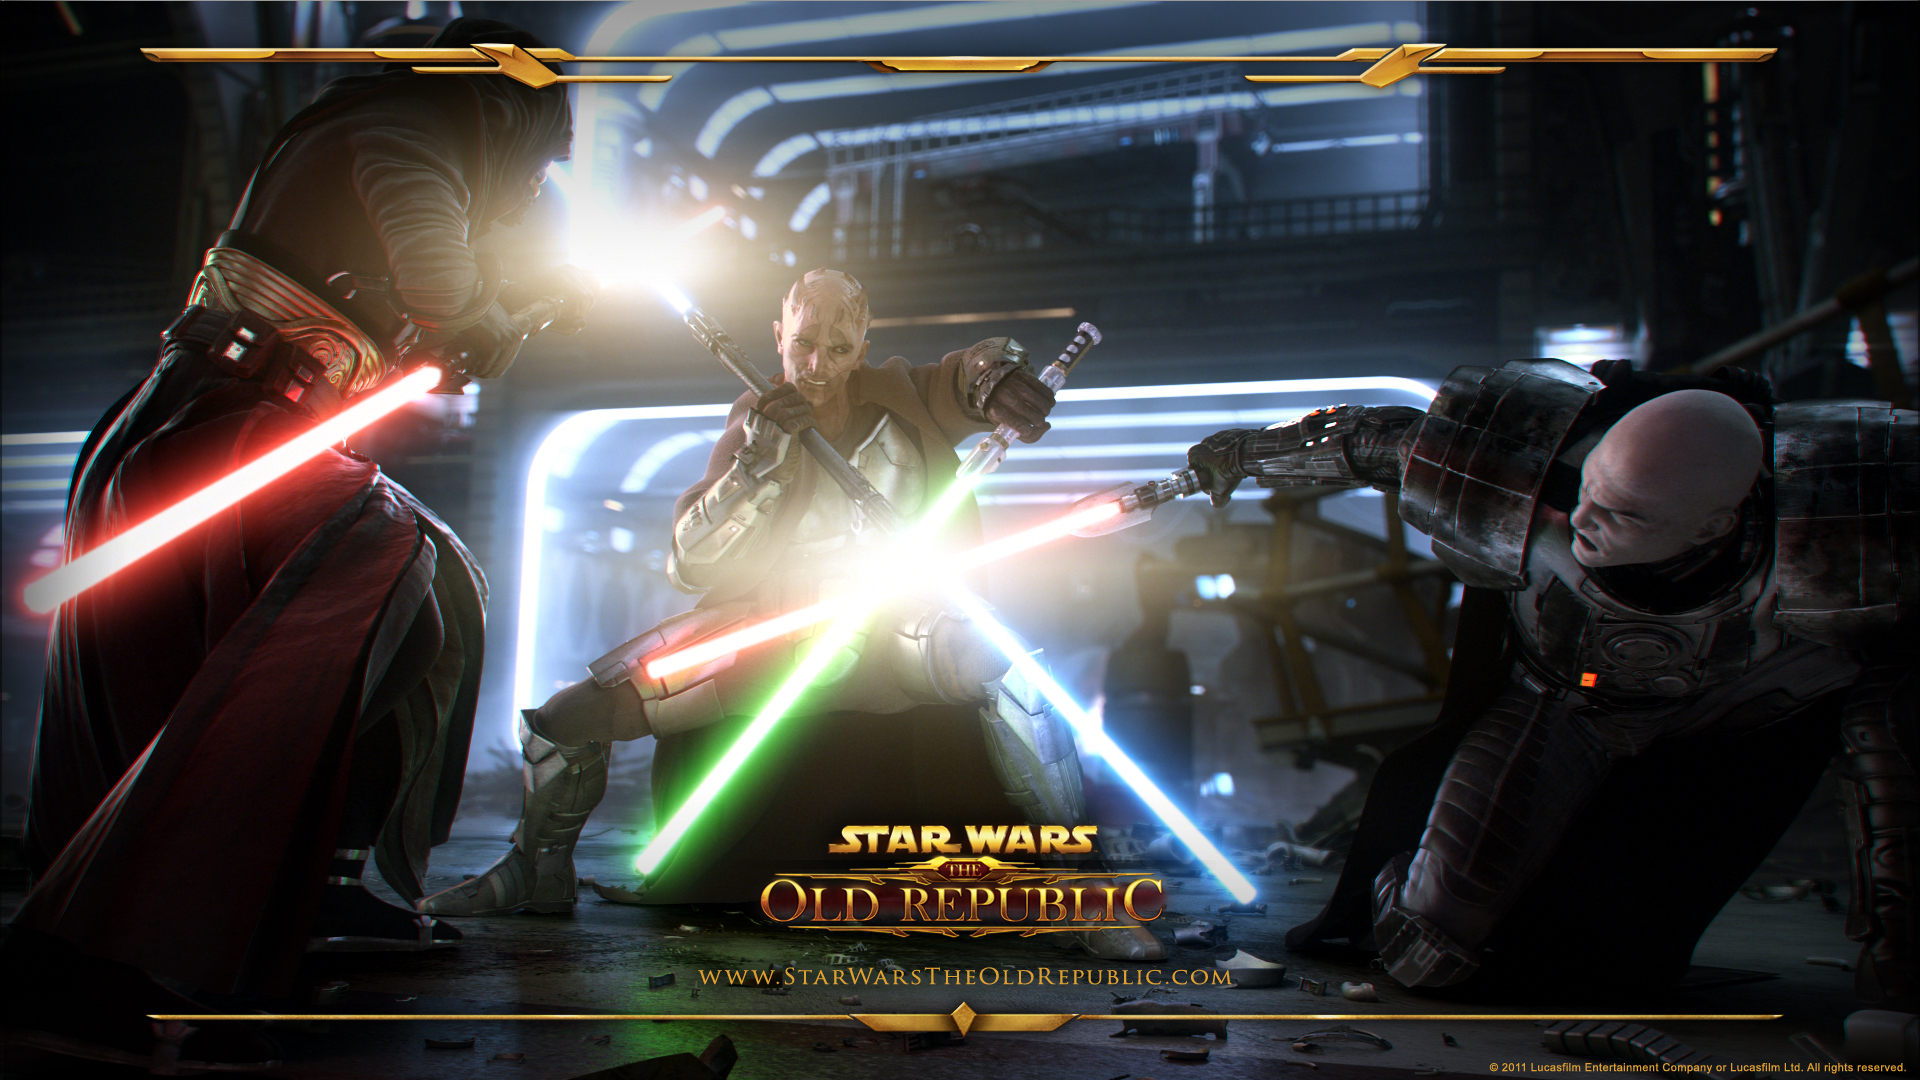 Star Wars the Old Republic wallpaper 2